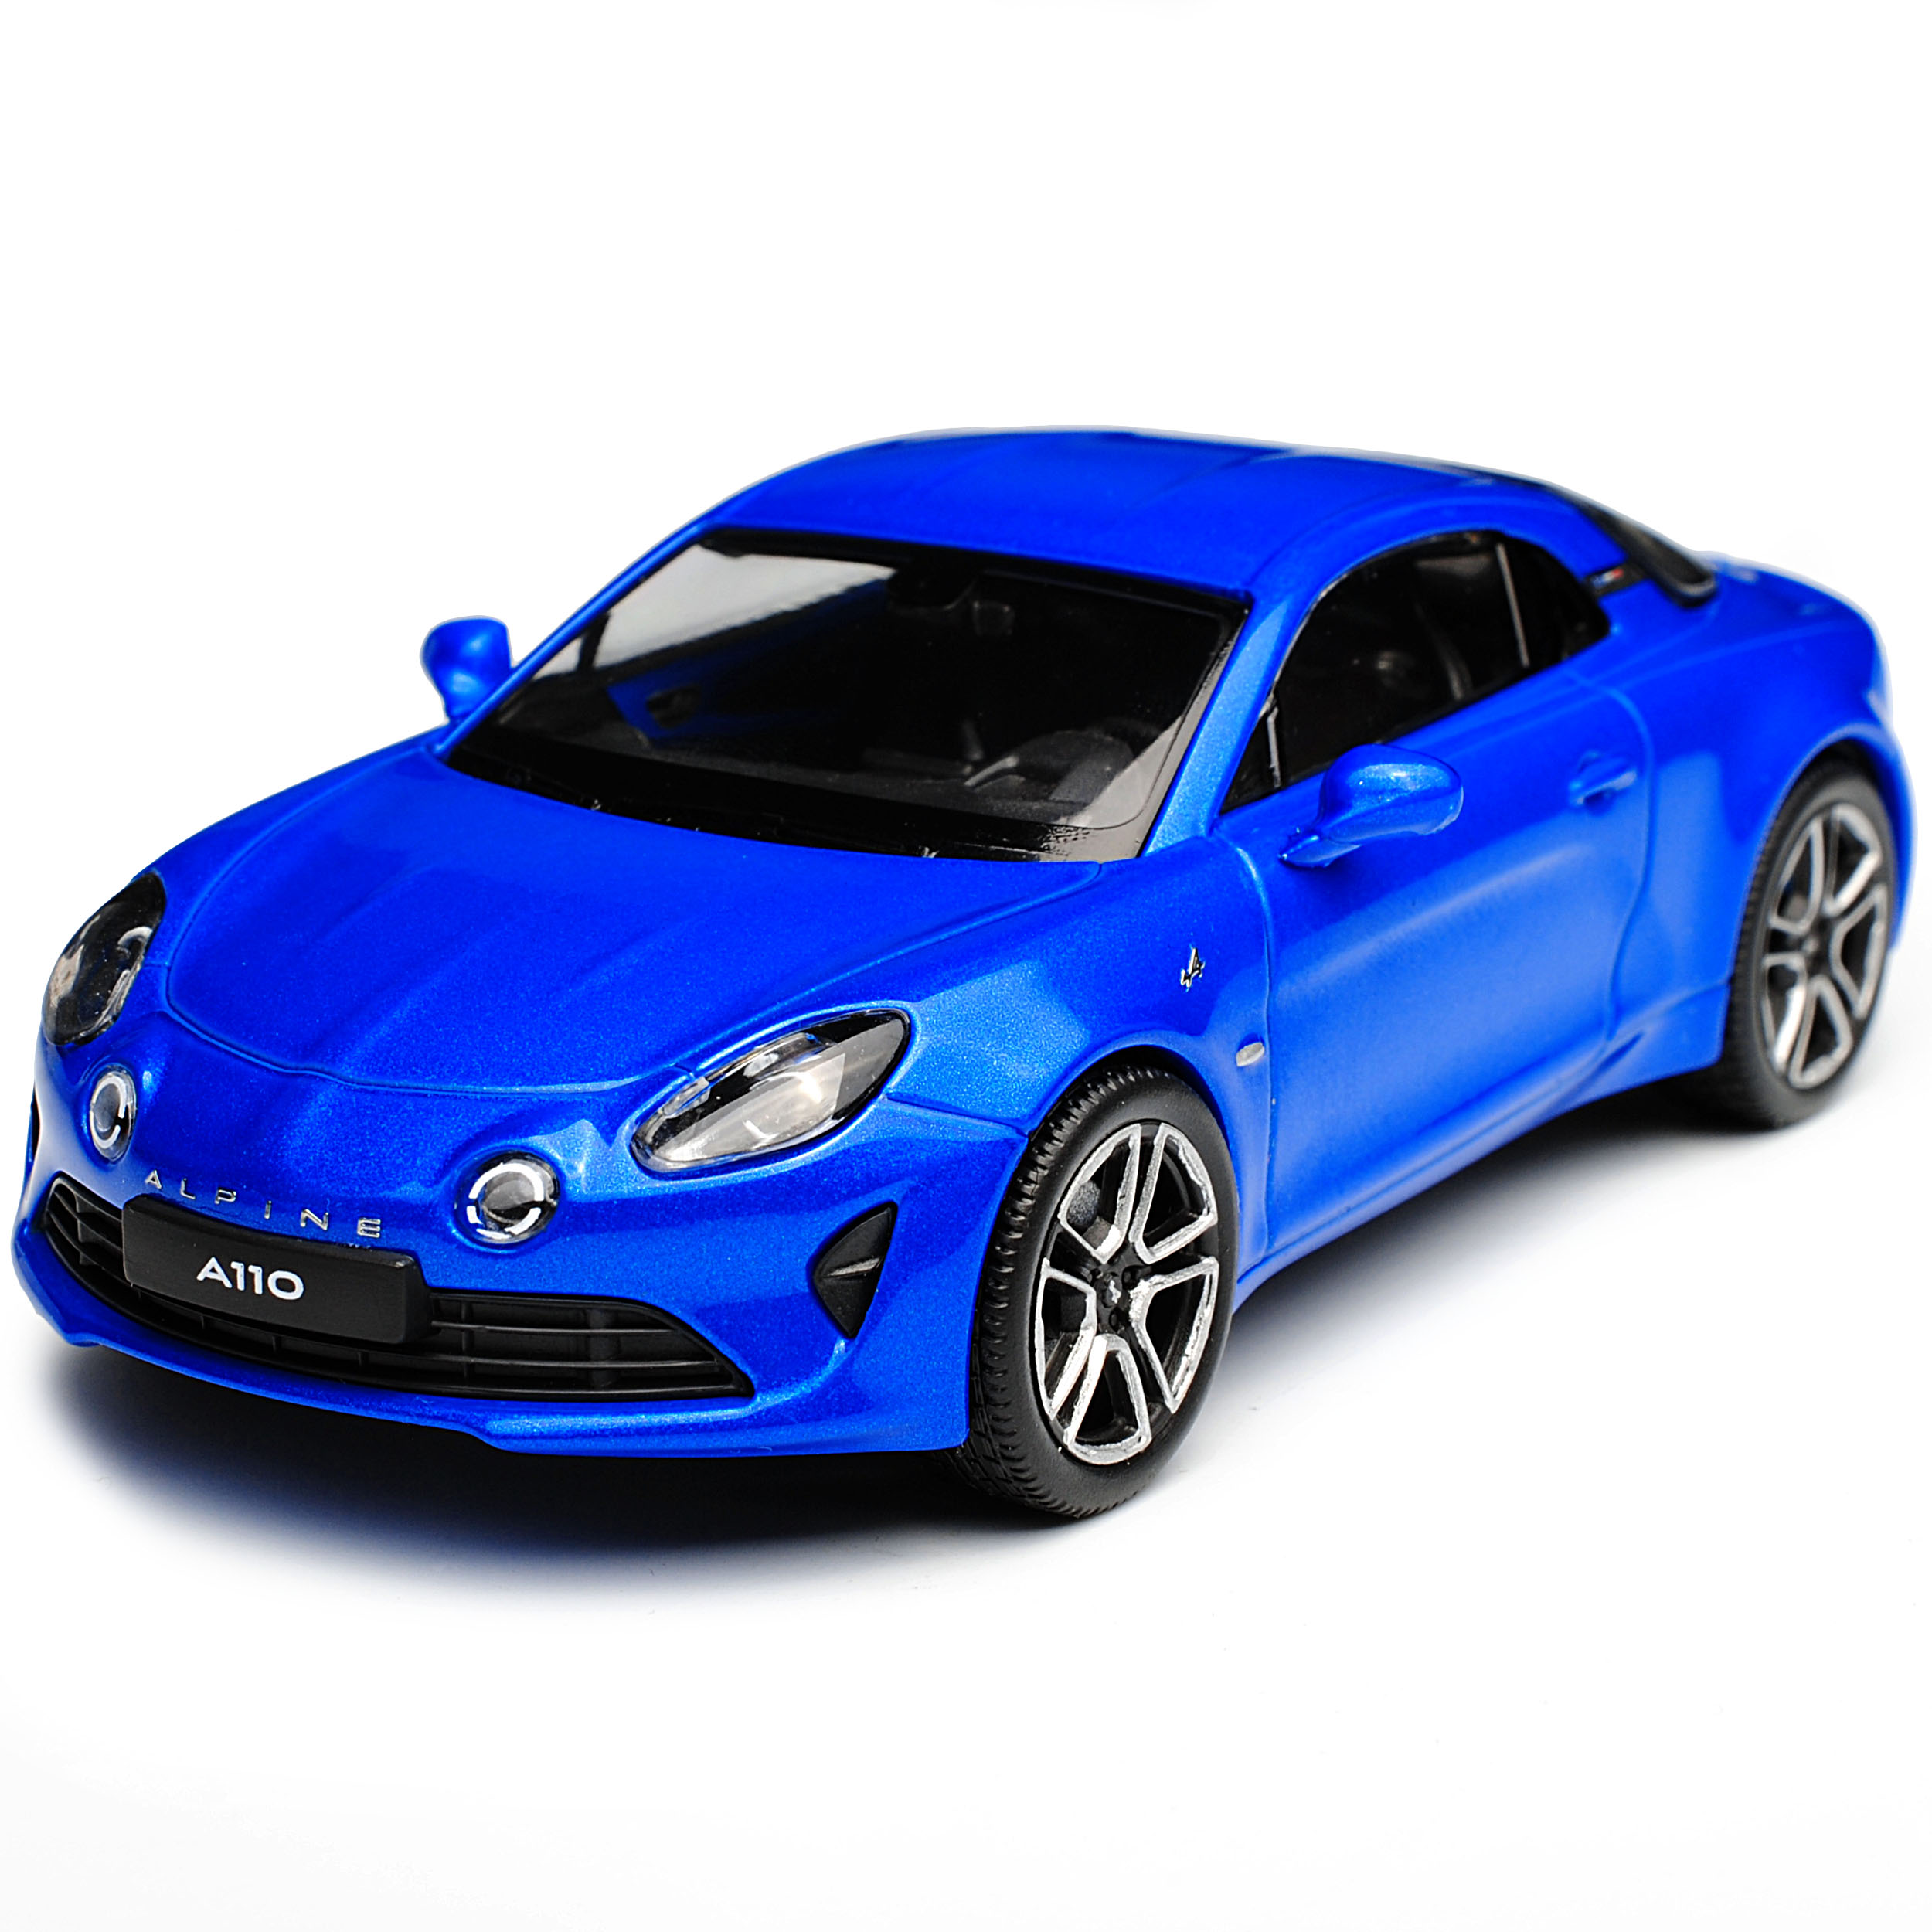 renault alpine a110 coupe blau premiere edition ab 2017 1. Black Bedroom Furniture Sets. Home Design Ideas